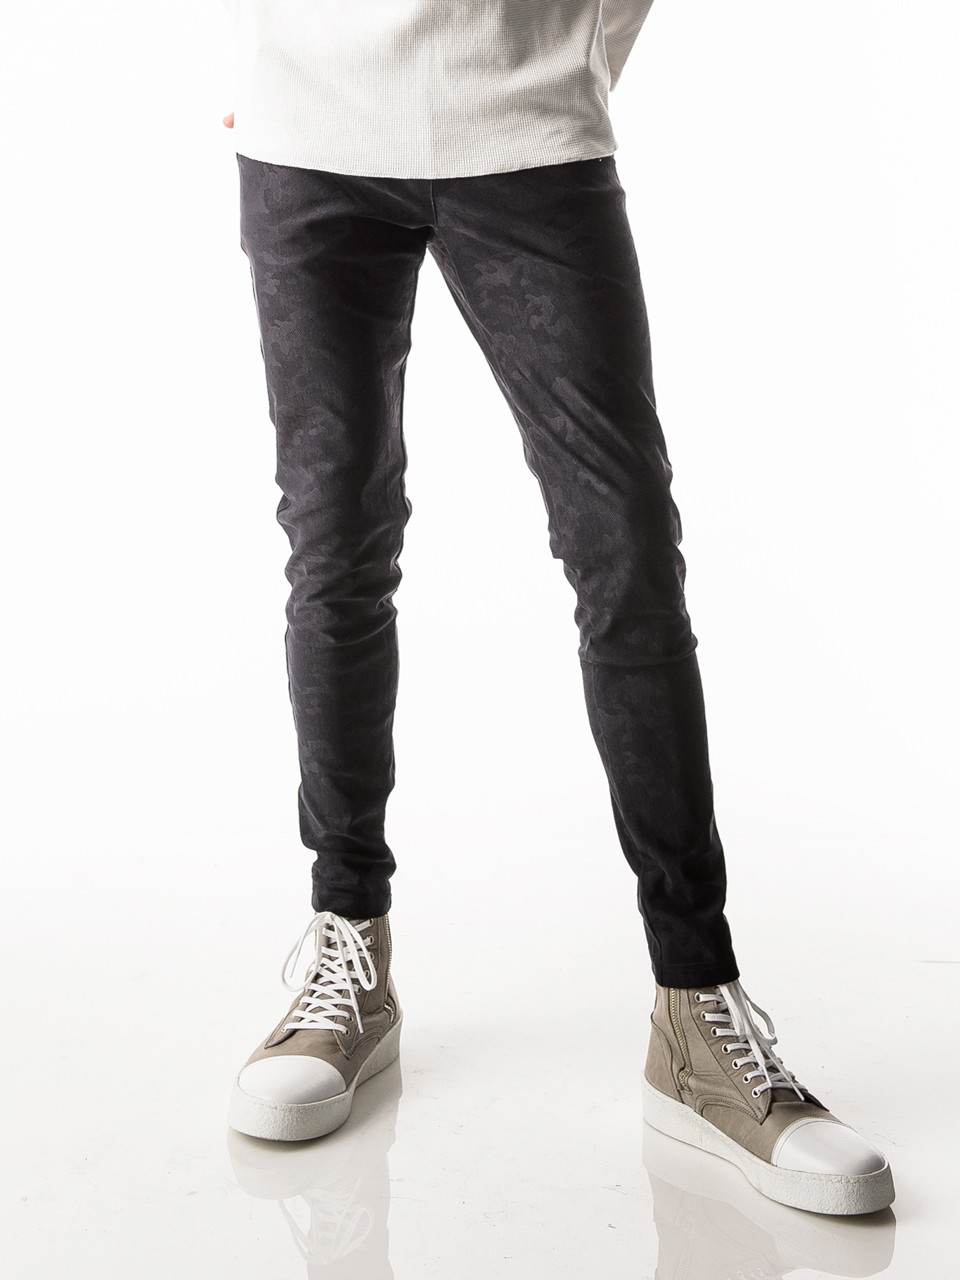 RESOUND CLOTHING | CHRIS EASY PANTS